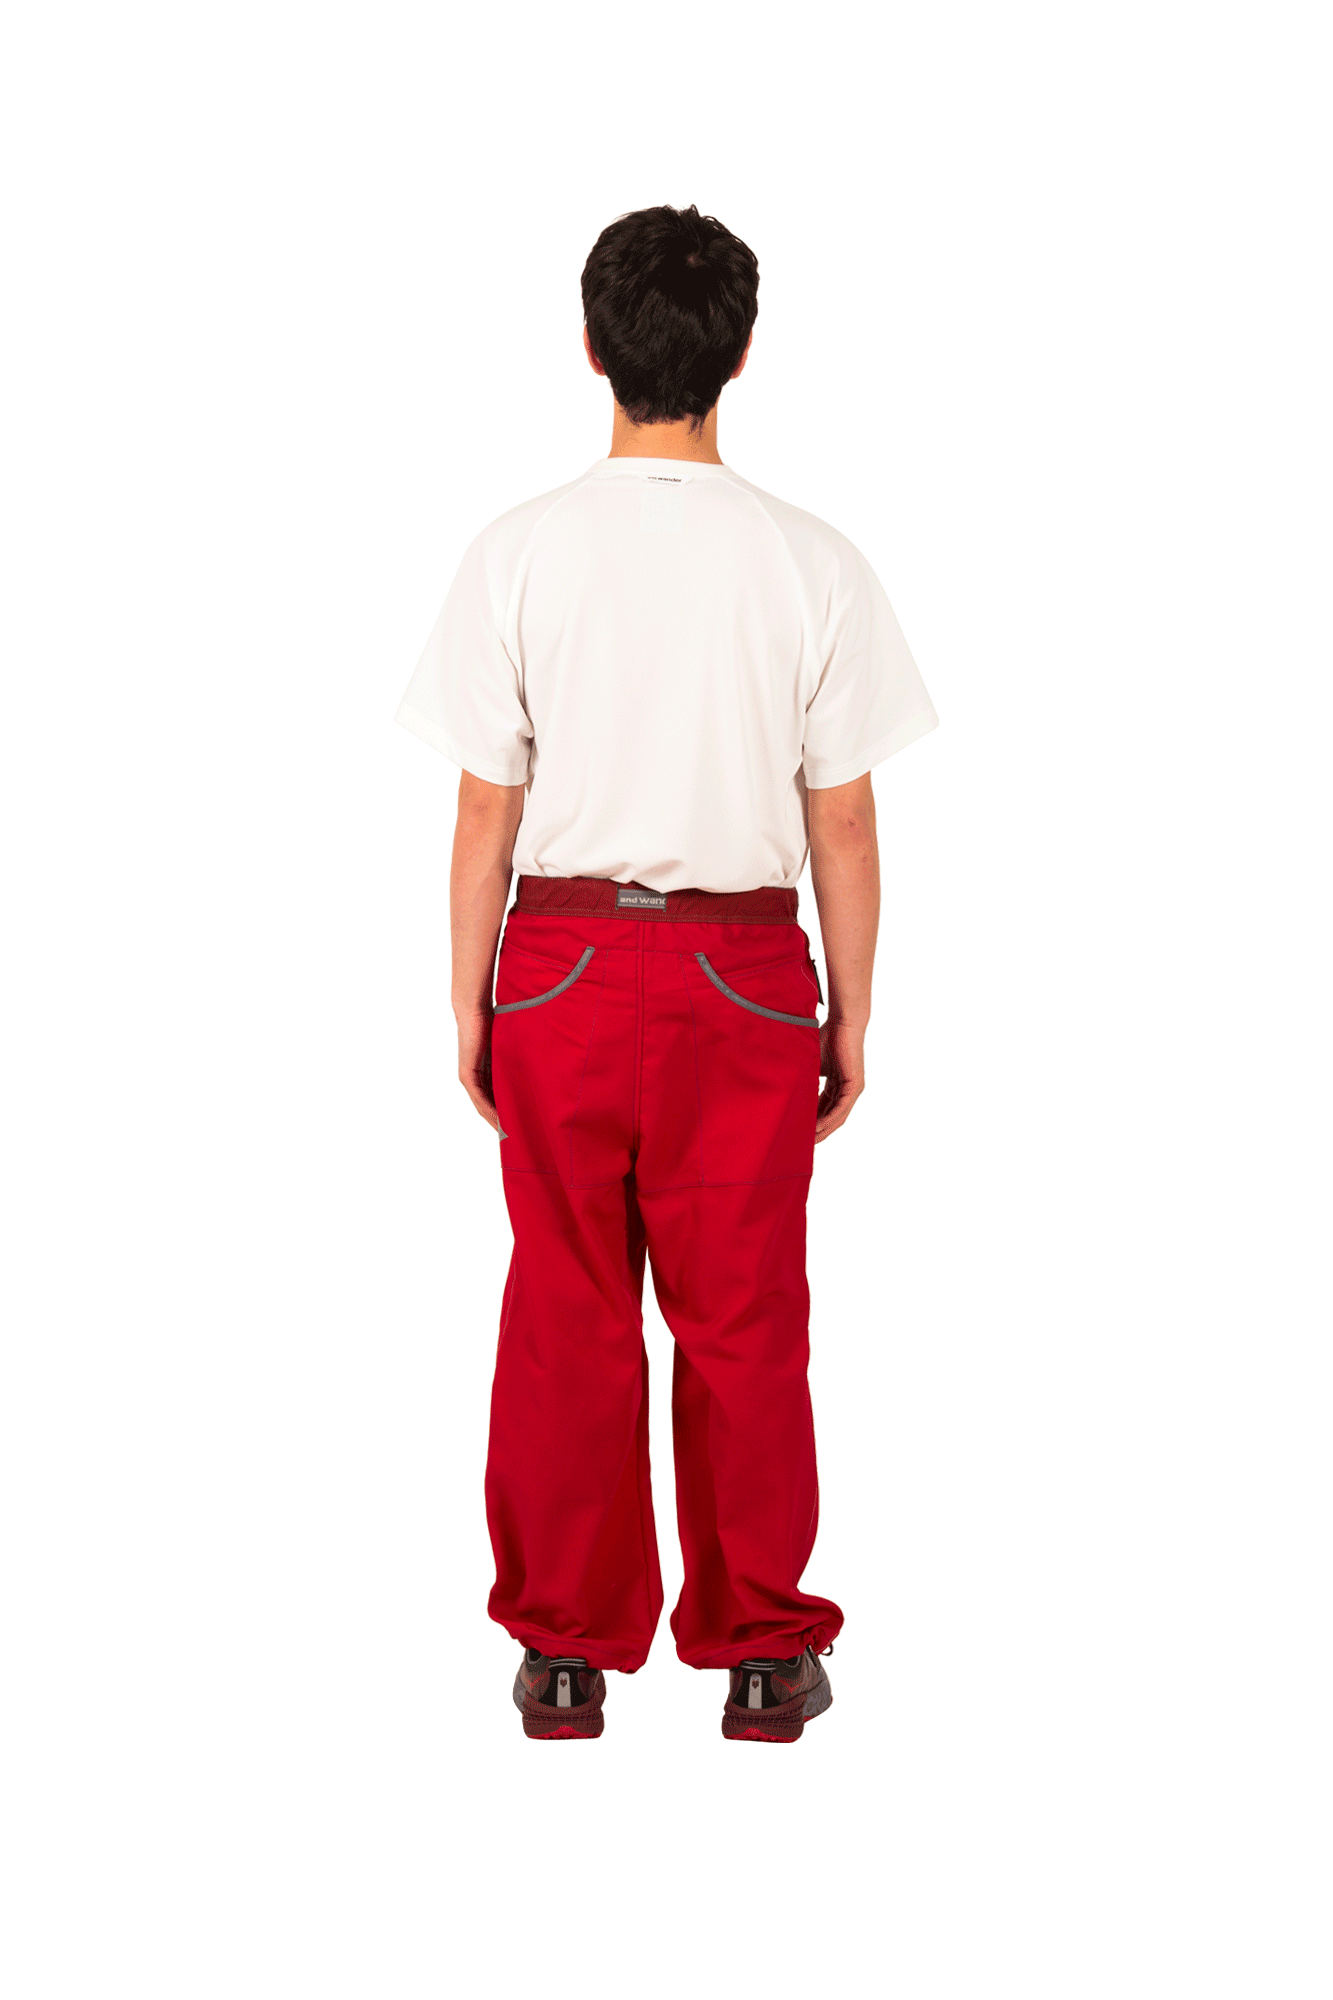 And Wander Pantaloni Vent Pants Rosso AW91-FF039#000#RED#3 - One Block Down